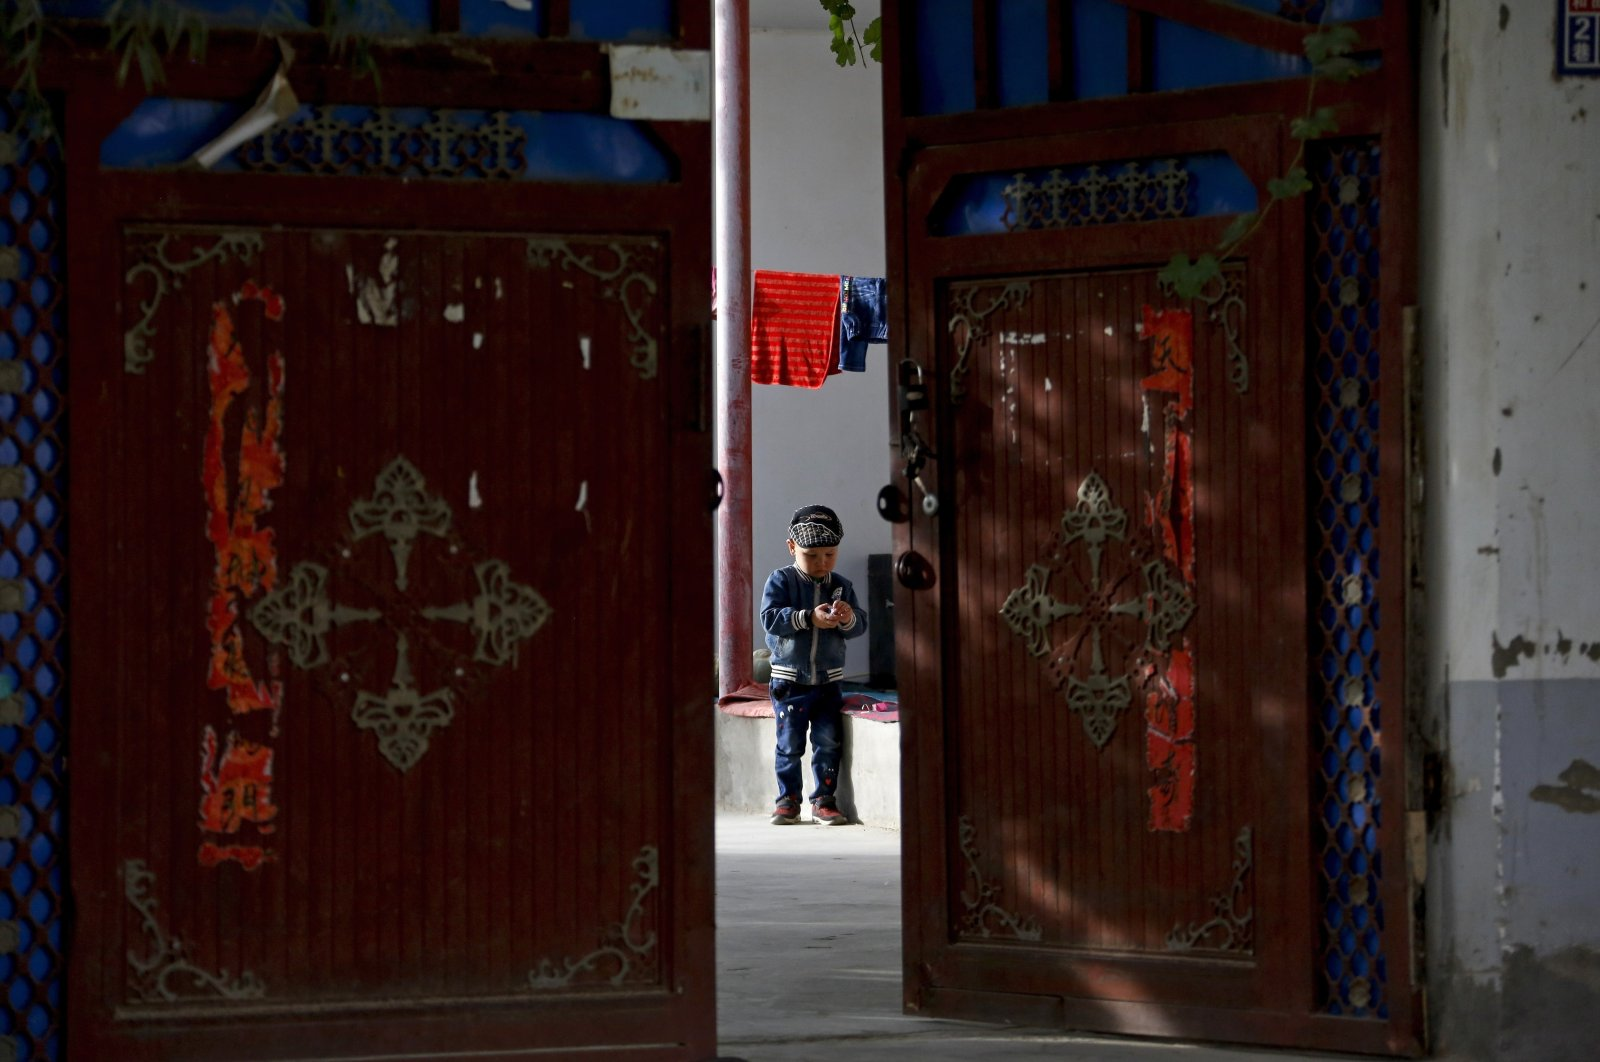 An Uighur child plays alone in the courtyard of a home at the Unity New Village in Hotan, in western China's Xinjiang region, Sept. 20, 2018. (AP Photo)